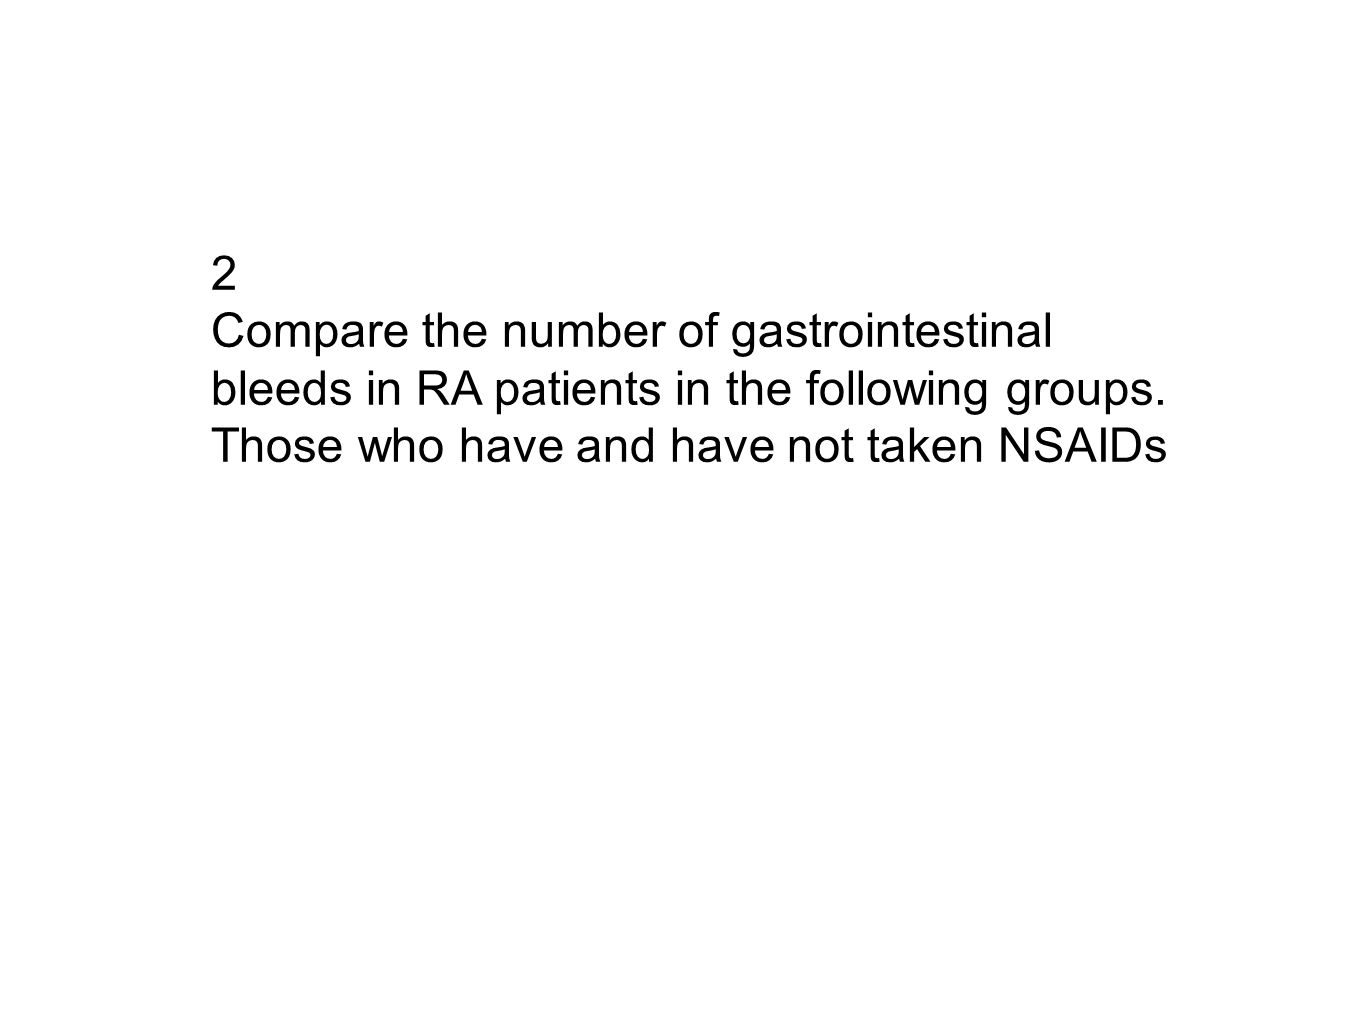 2 Compare the number of gastrointestinal bleeds in RA patients in the following groups. Those who have and have not taken NSAIDs